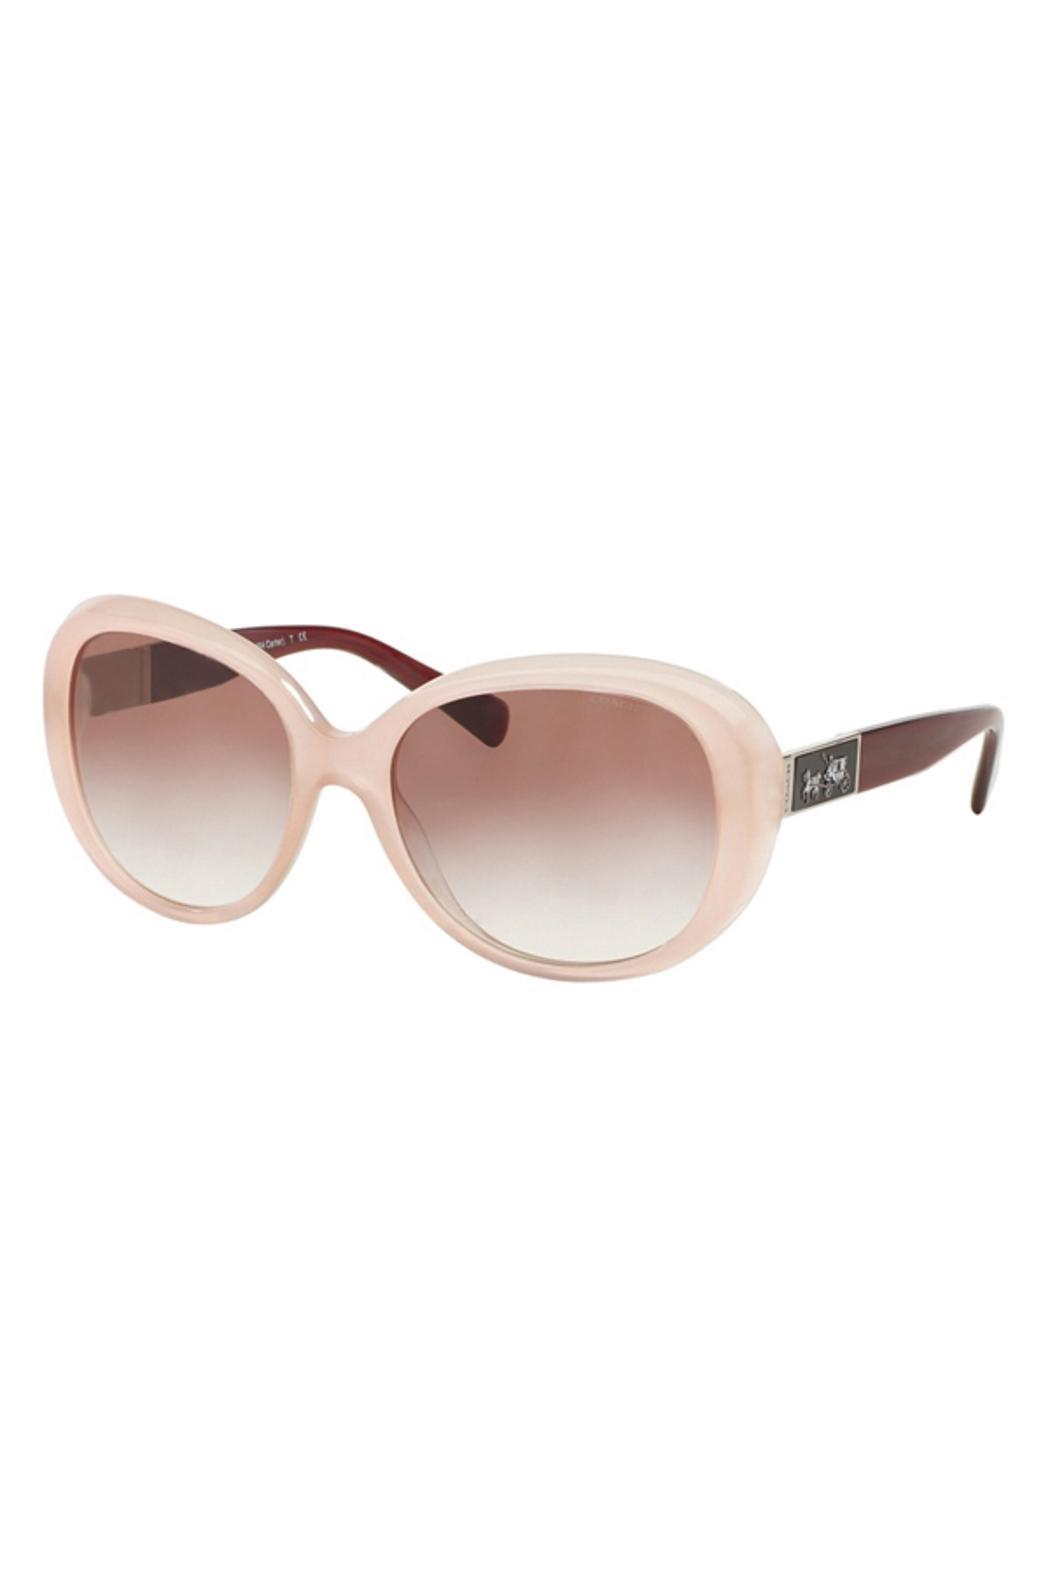 Pink Coach Sunglasses  coach pink oversized sunglasses from boston by soloptics tiques